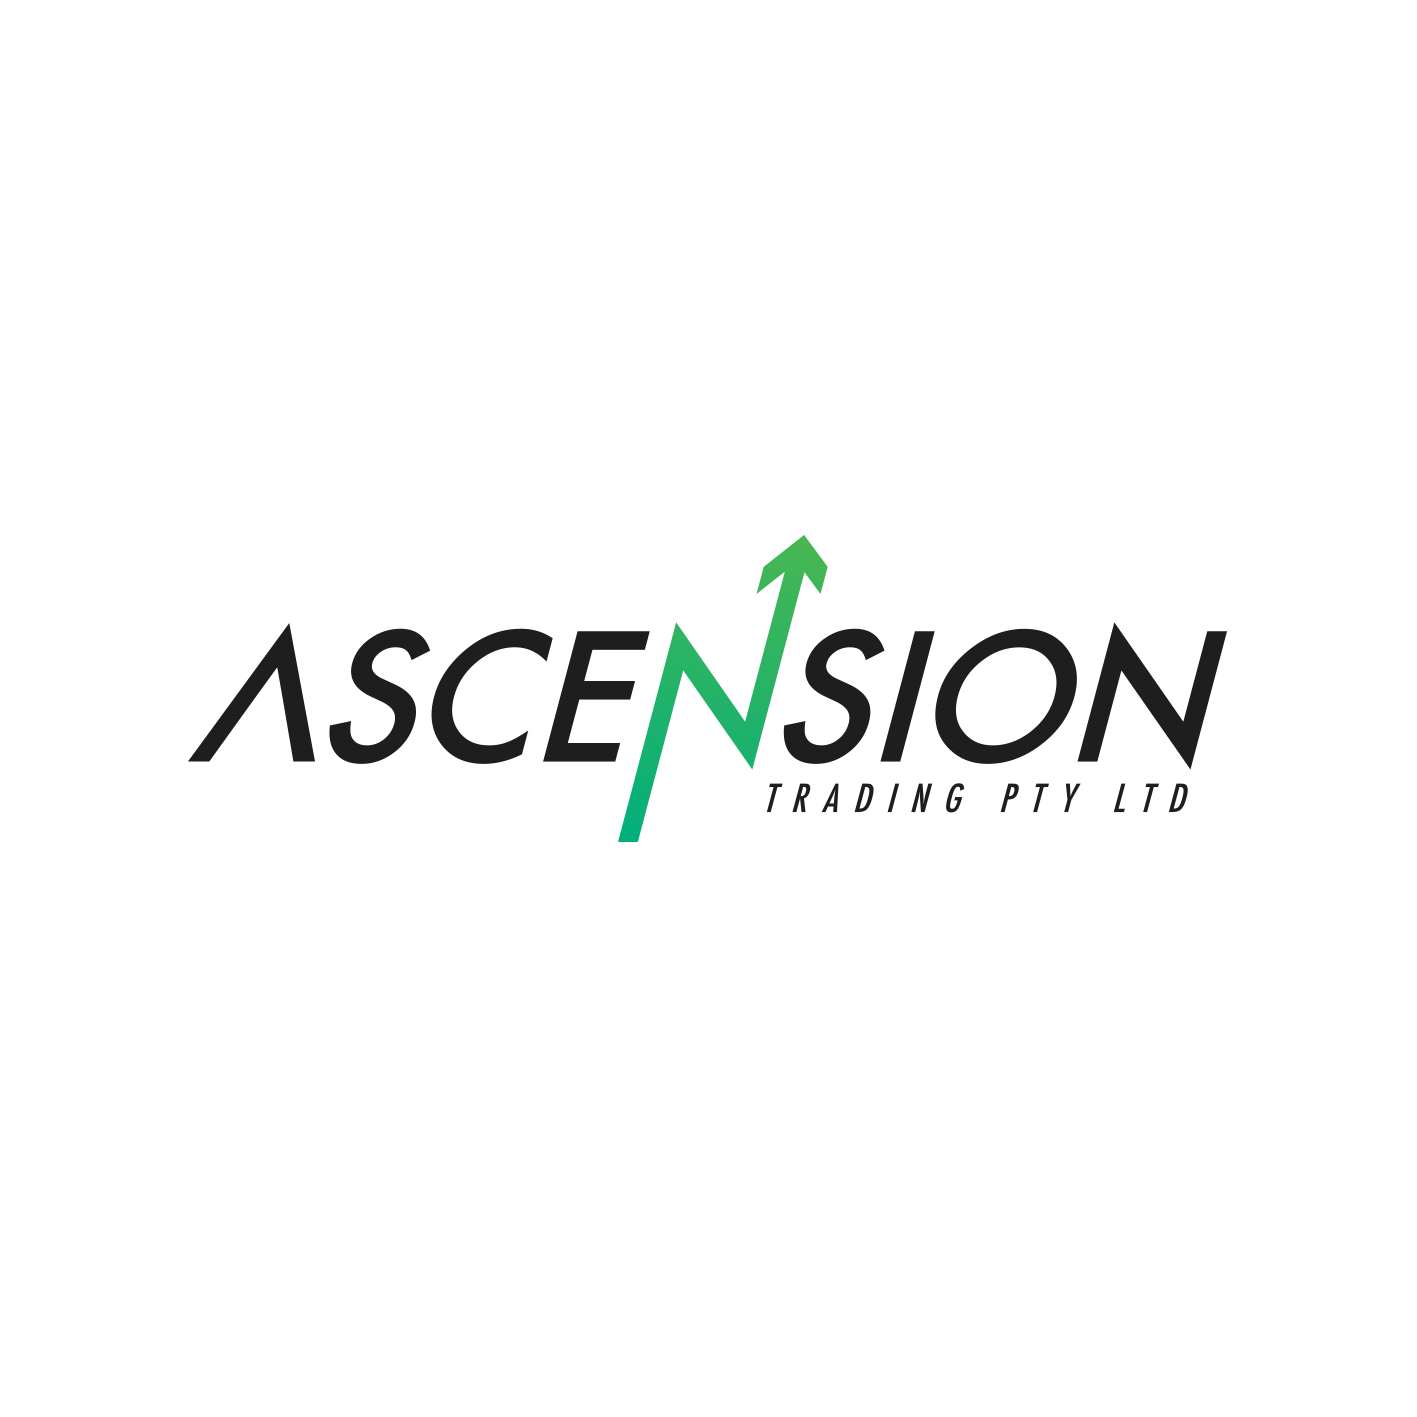 Ascension Trading